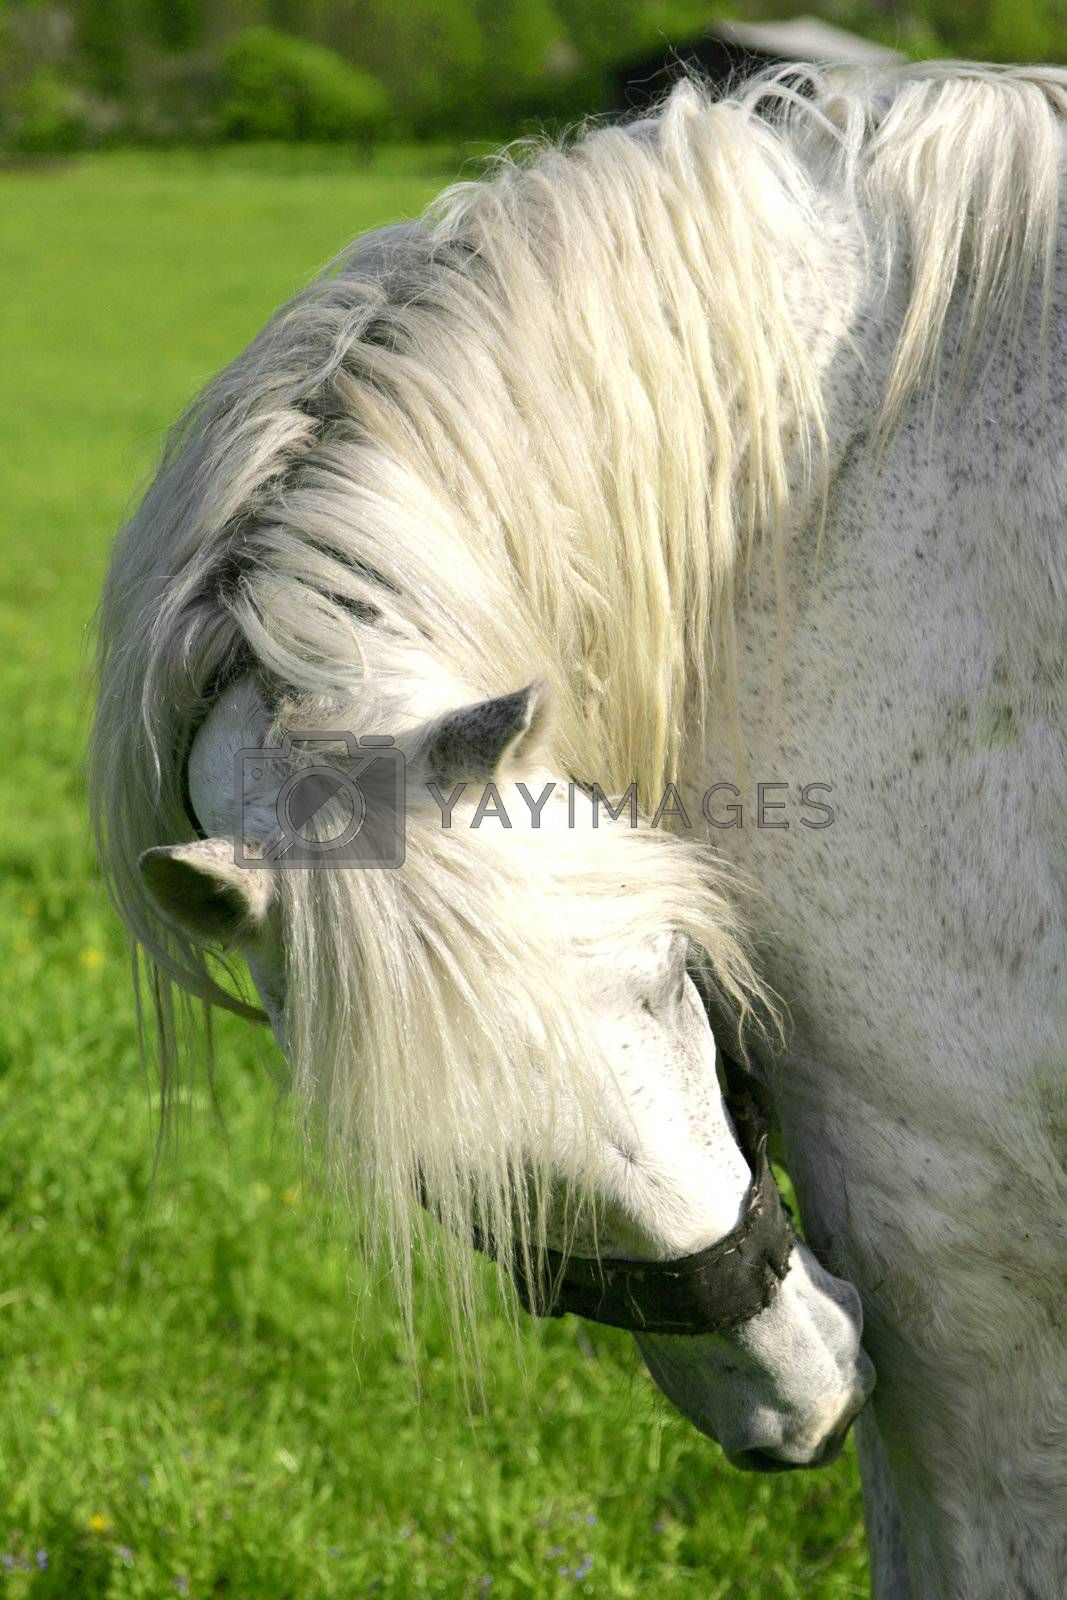 The horse is grazed on a lawn